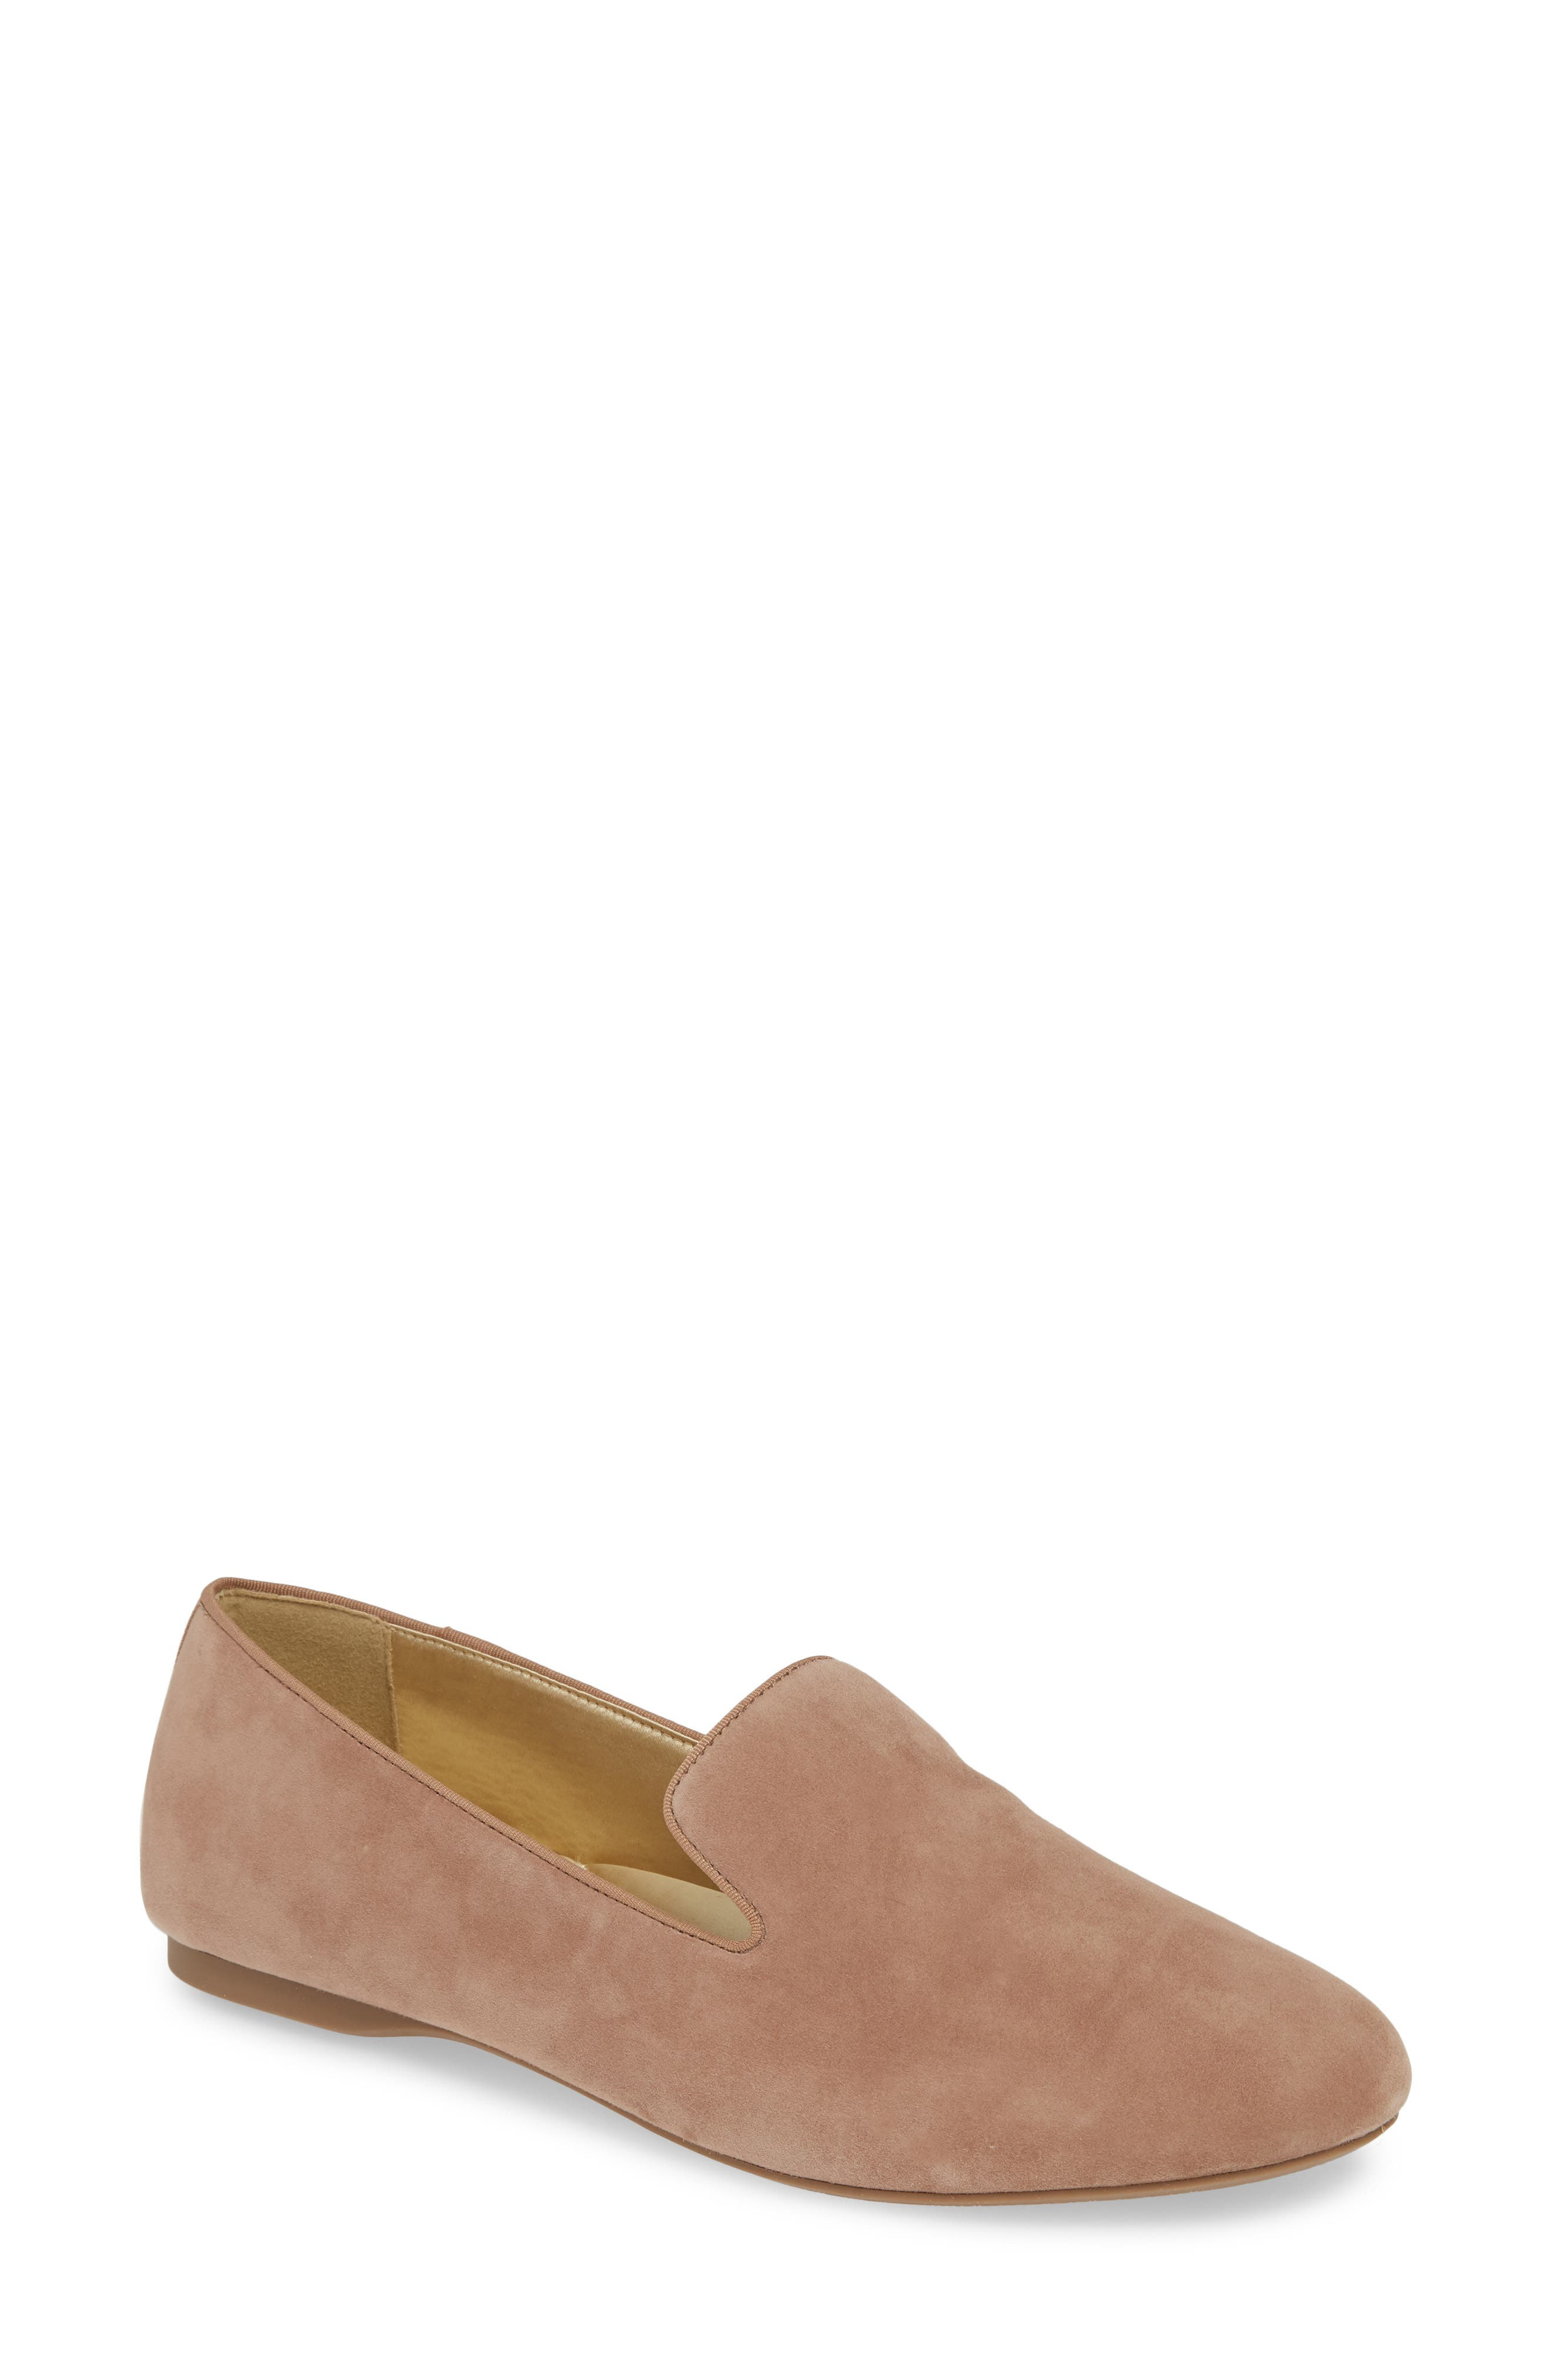 Women's Arch Support Loafers \u0026 Oxfords